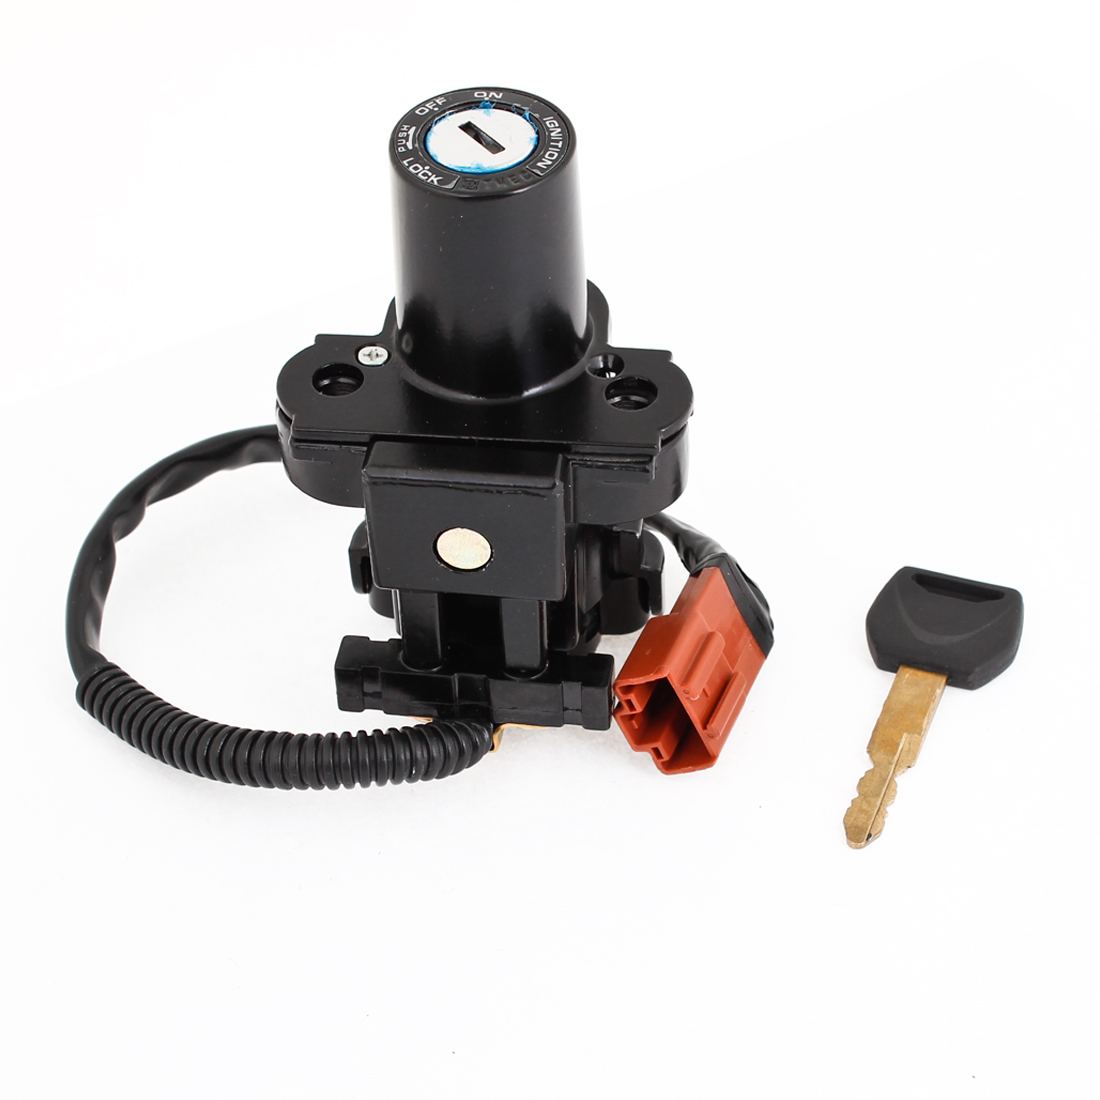 Motorcycle Lock-Off-On Type Ignition Switch Replacement for Honda 08 CBR1000